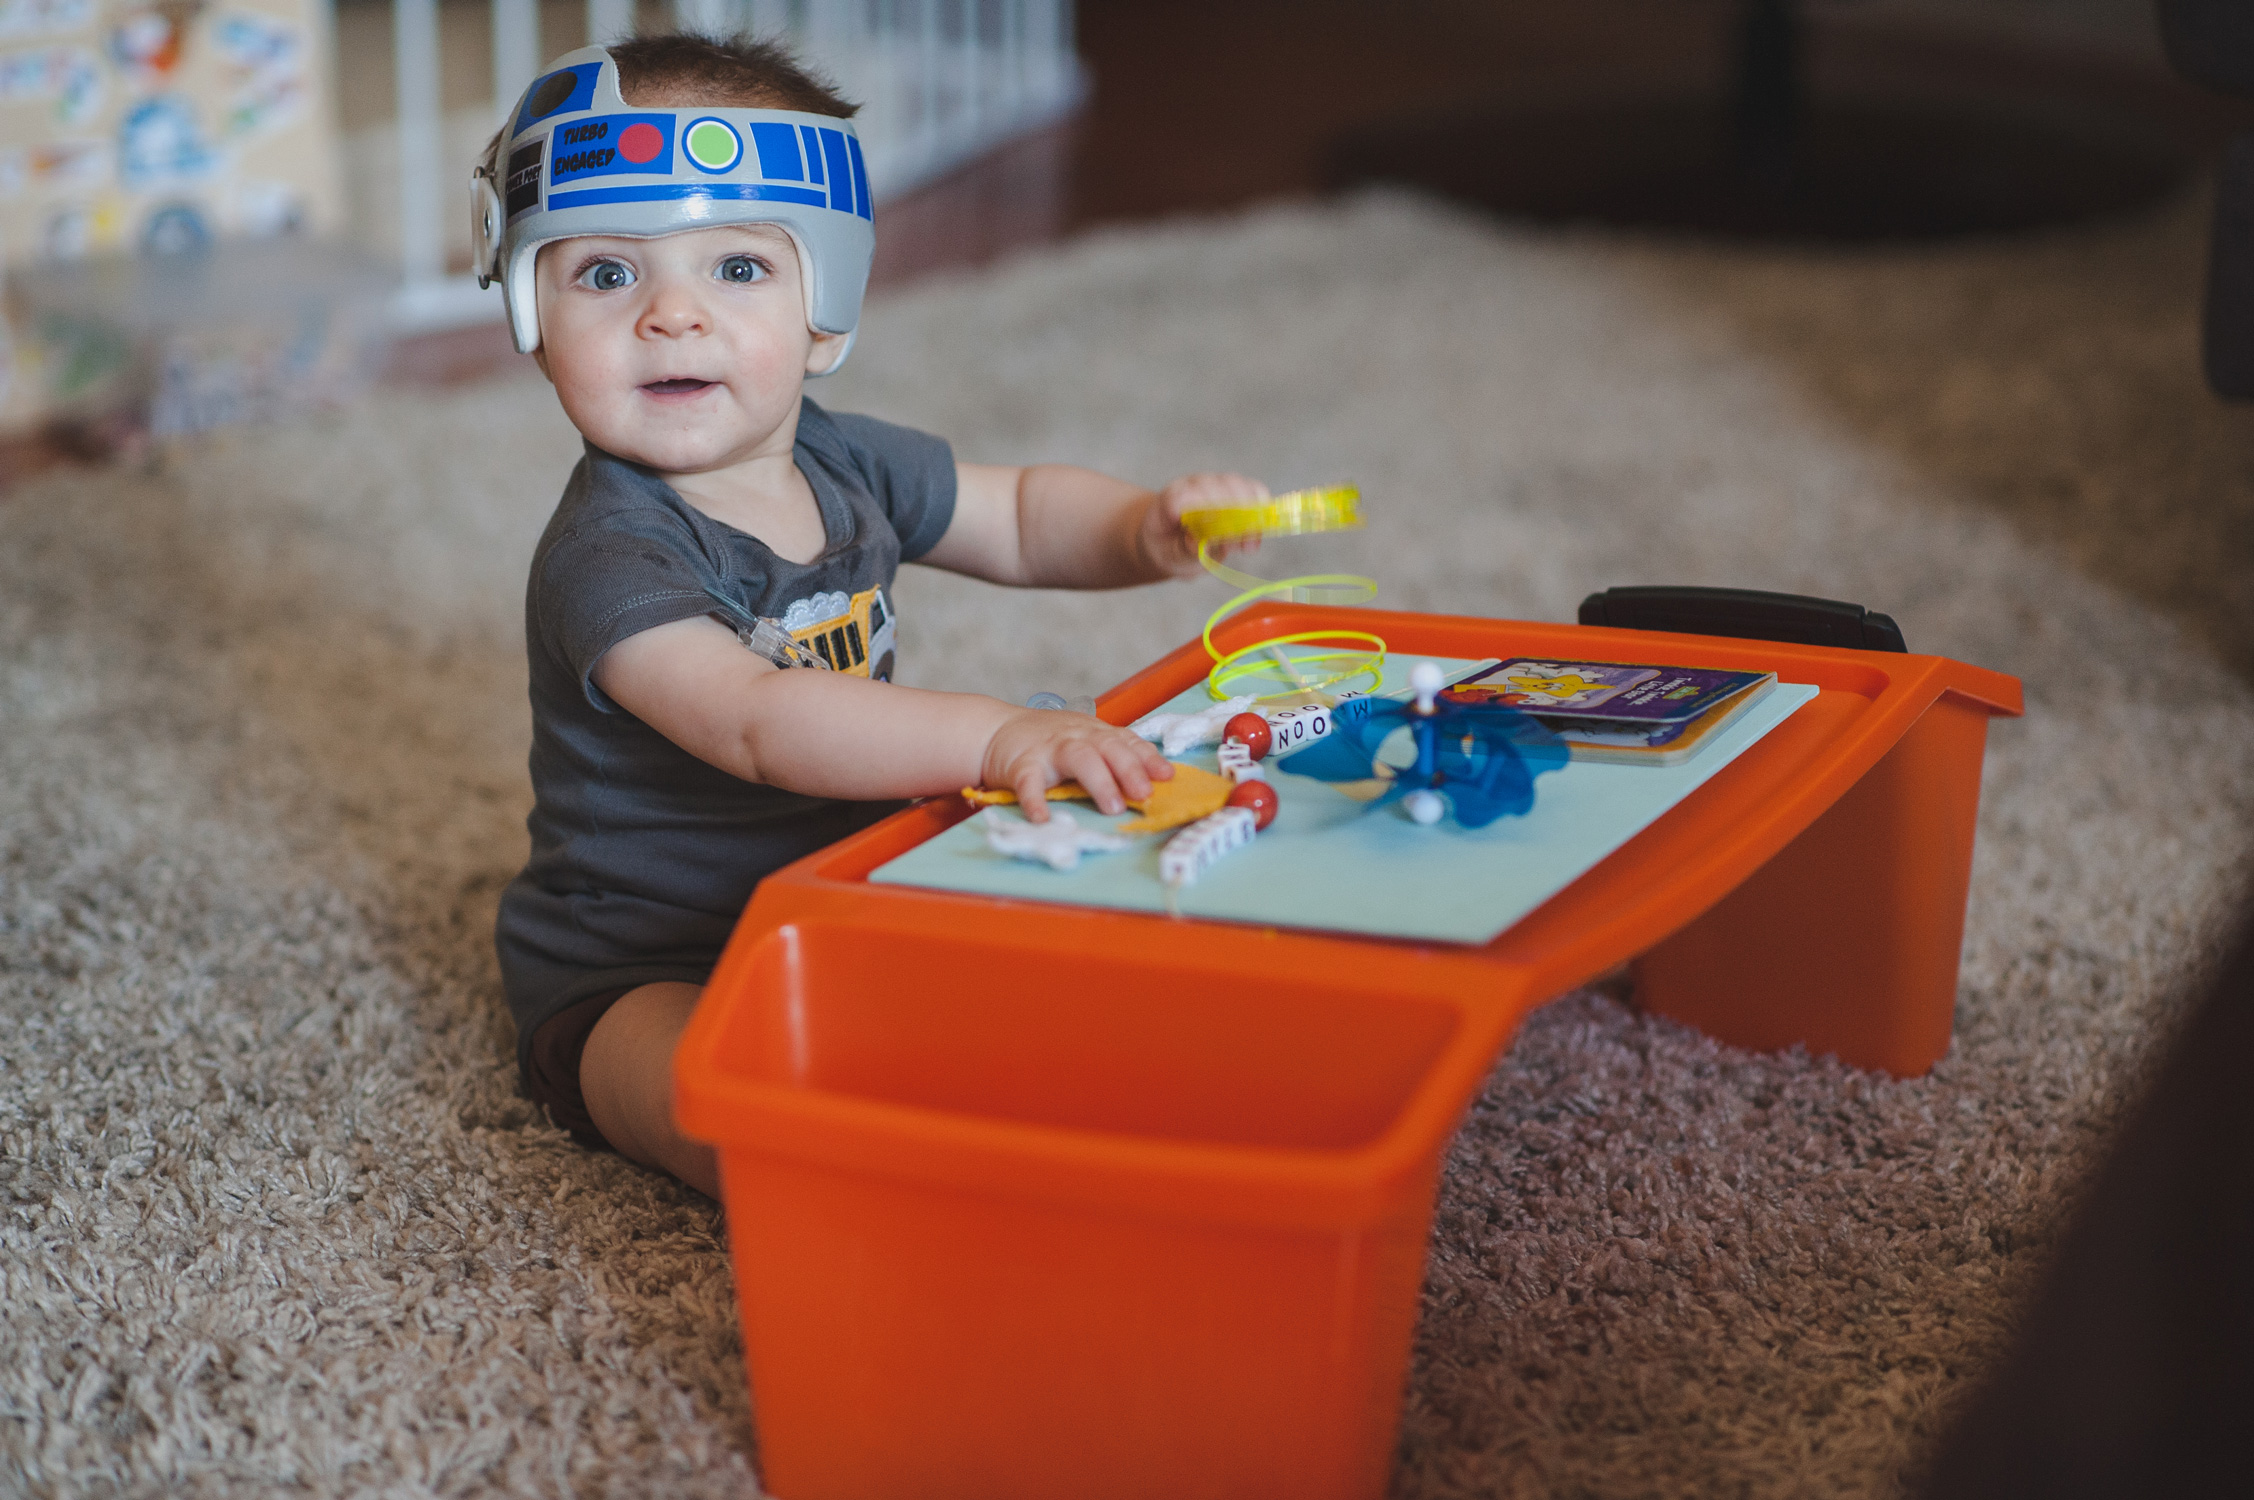 Baby with cranial helmet decorated like R2D2 from Star Wars